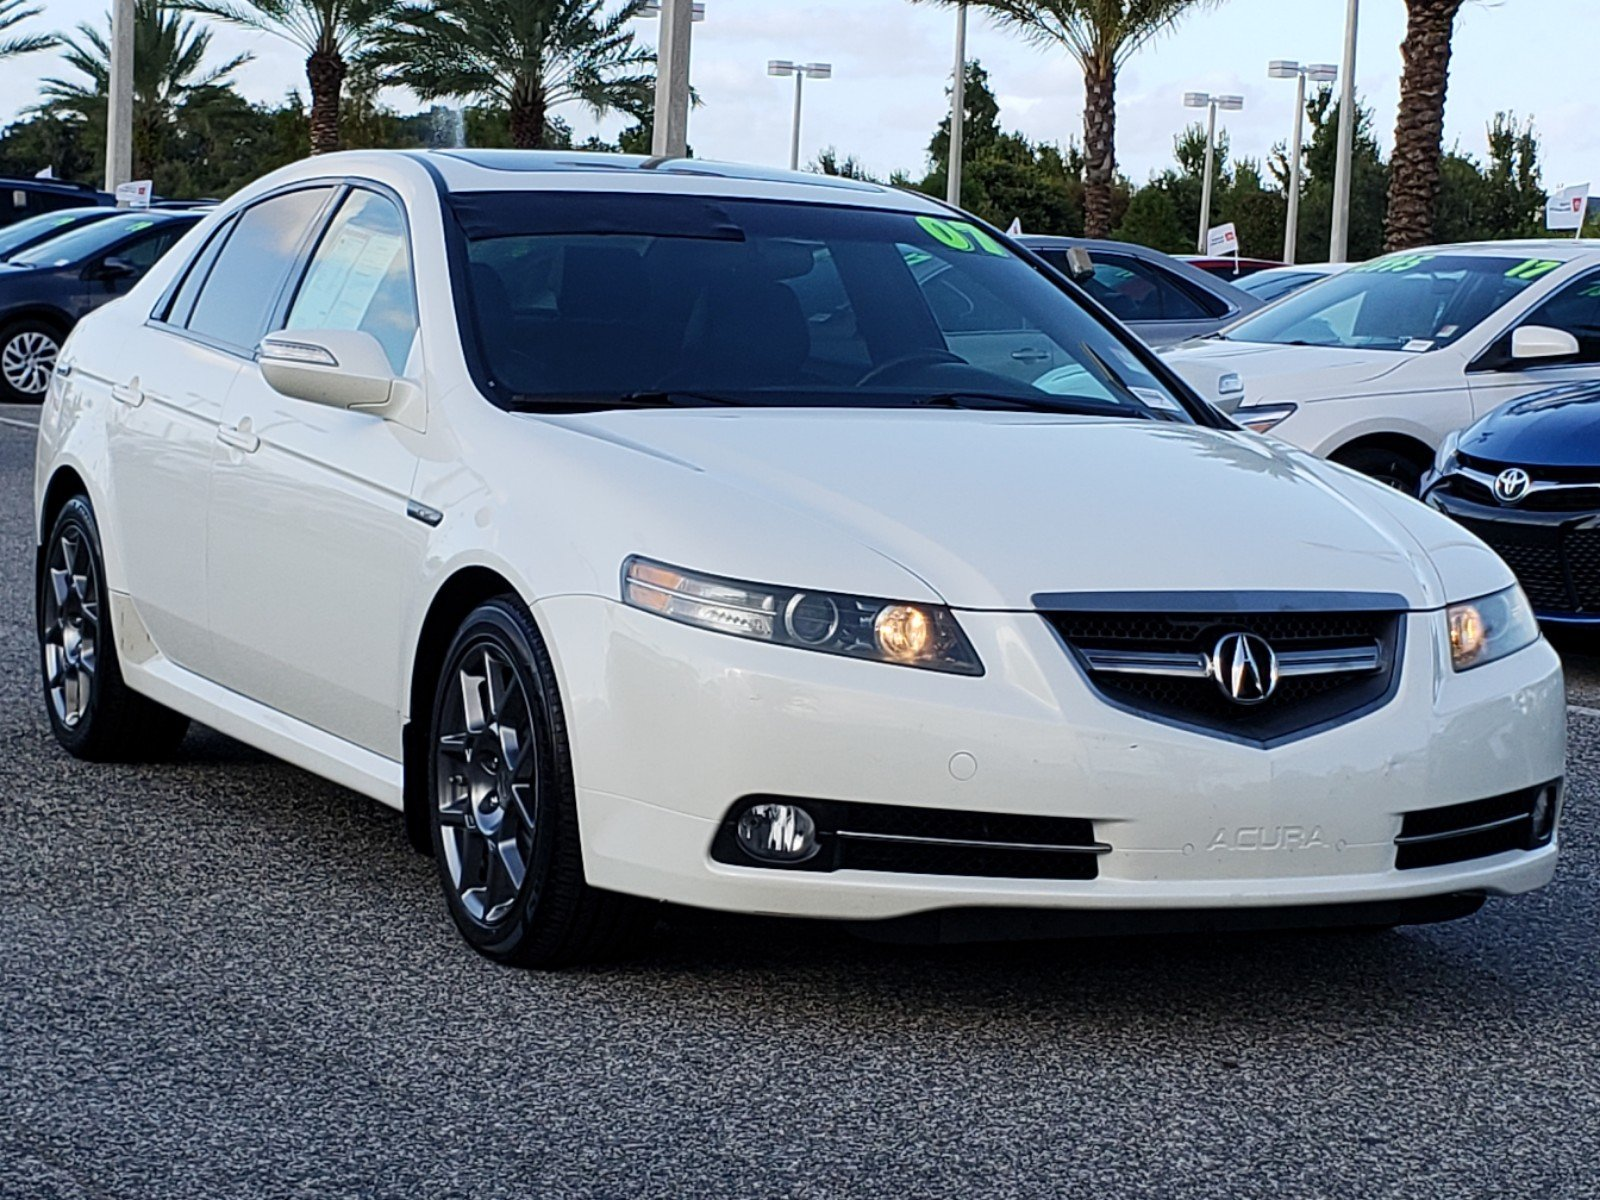 Pre-Owned 2007 Acura TL Type-S